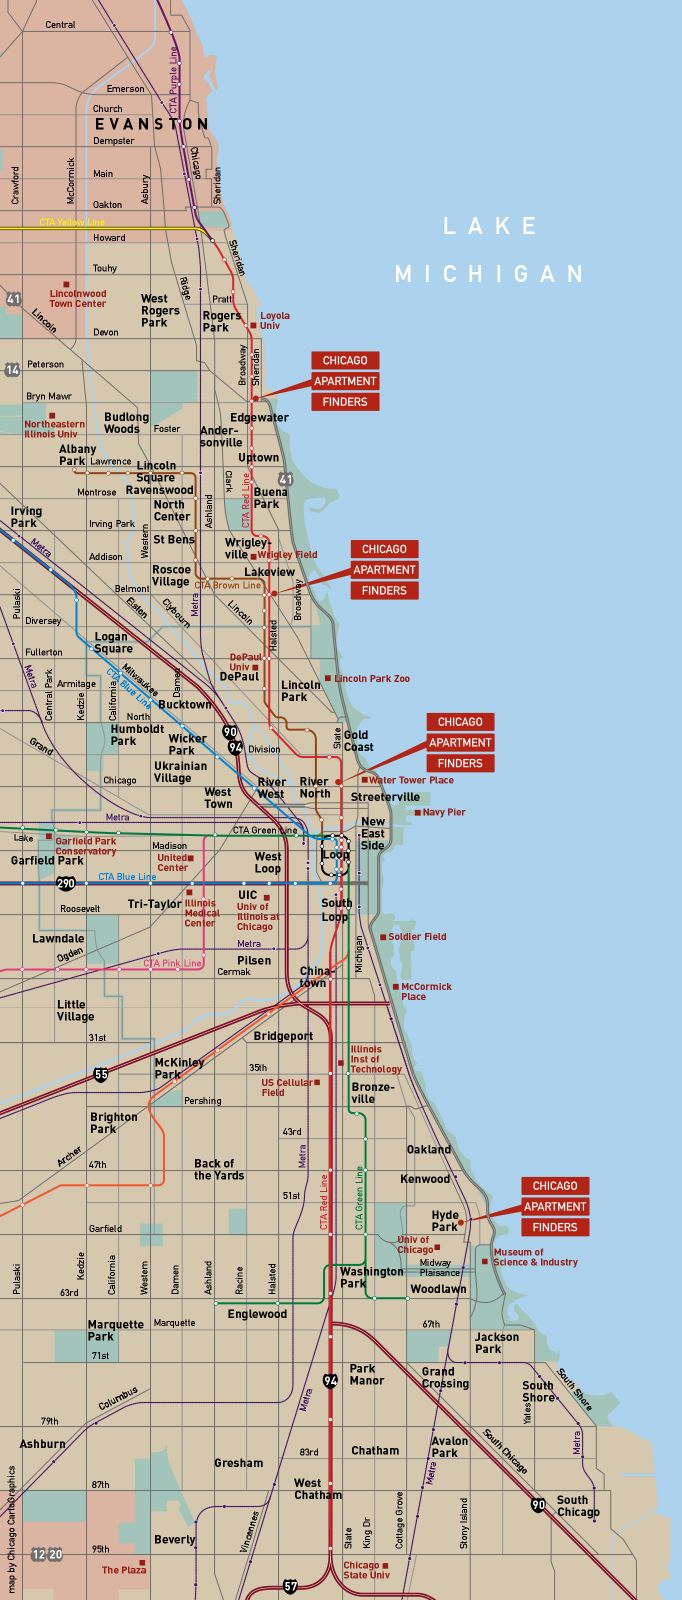 Best CHICAGO CHICAGO Images On Pinterest - Chicago map miracle mile